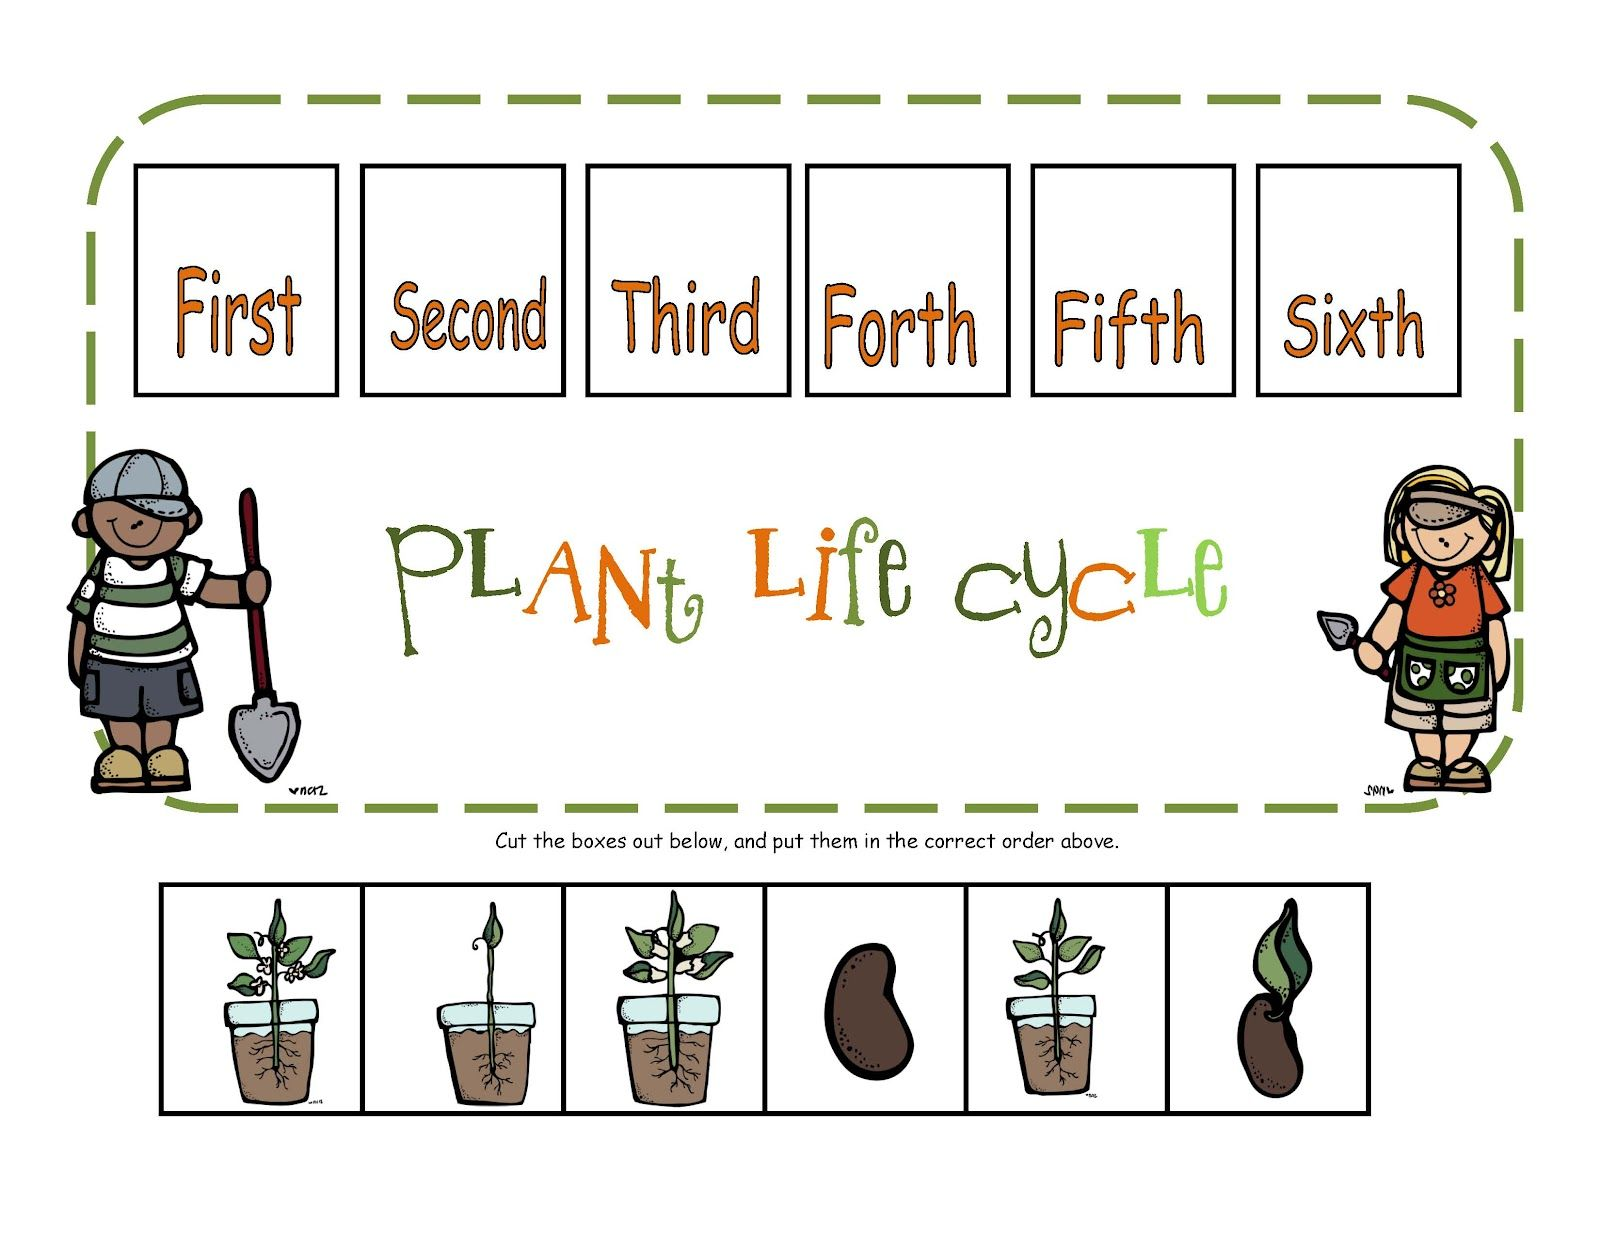 worksheet Life Cycle Of A Pumpkin Worksheet 1000 images about plant cycle on pinterest pumpkins pumpkin life and montessori materials